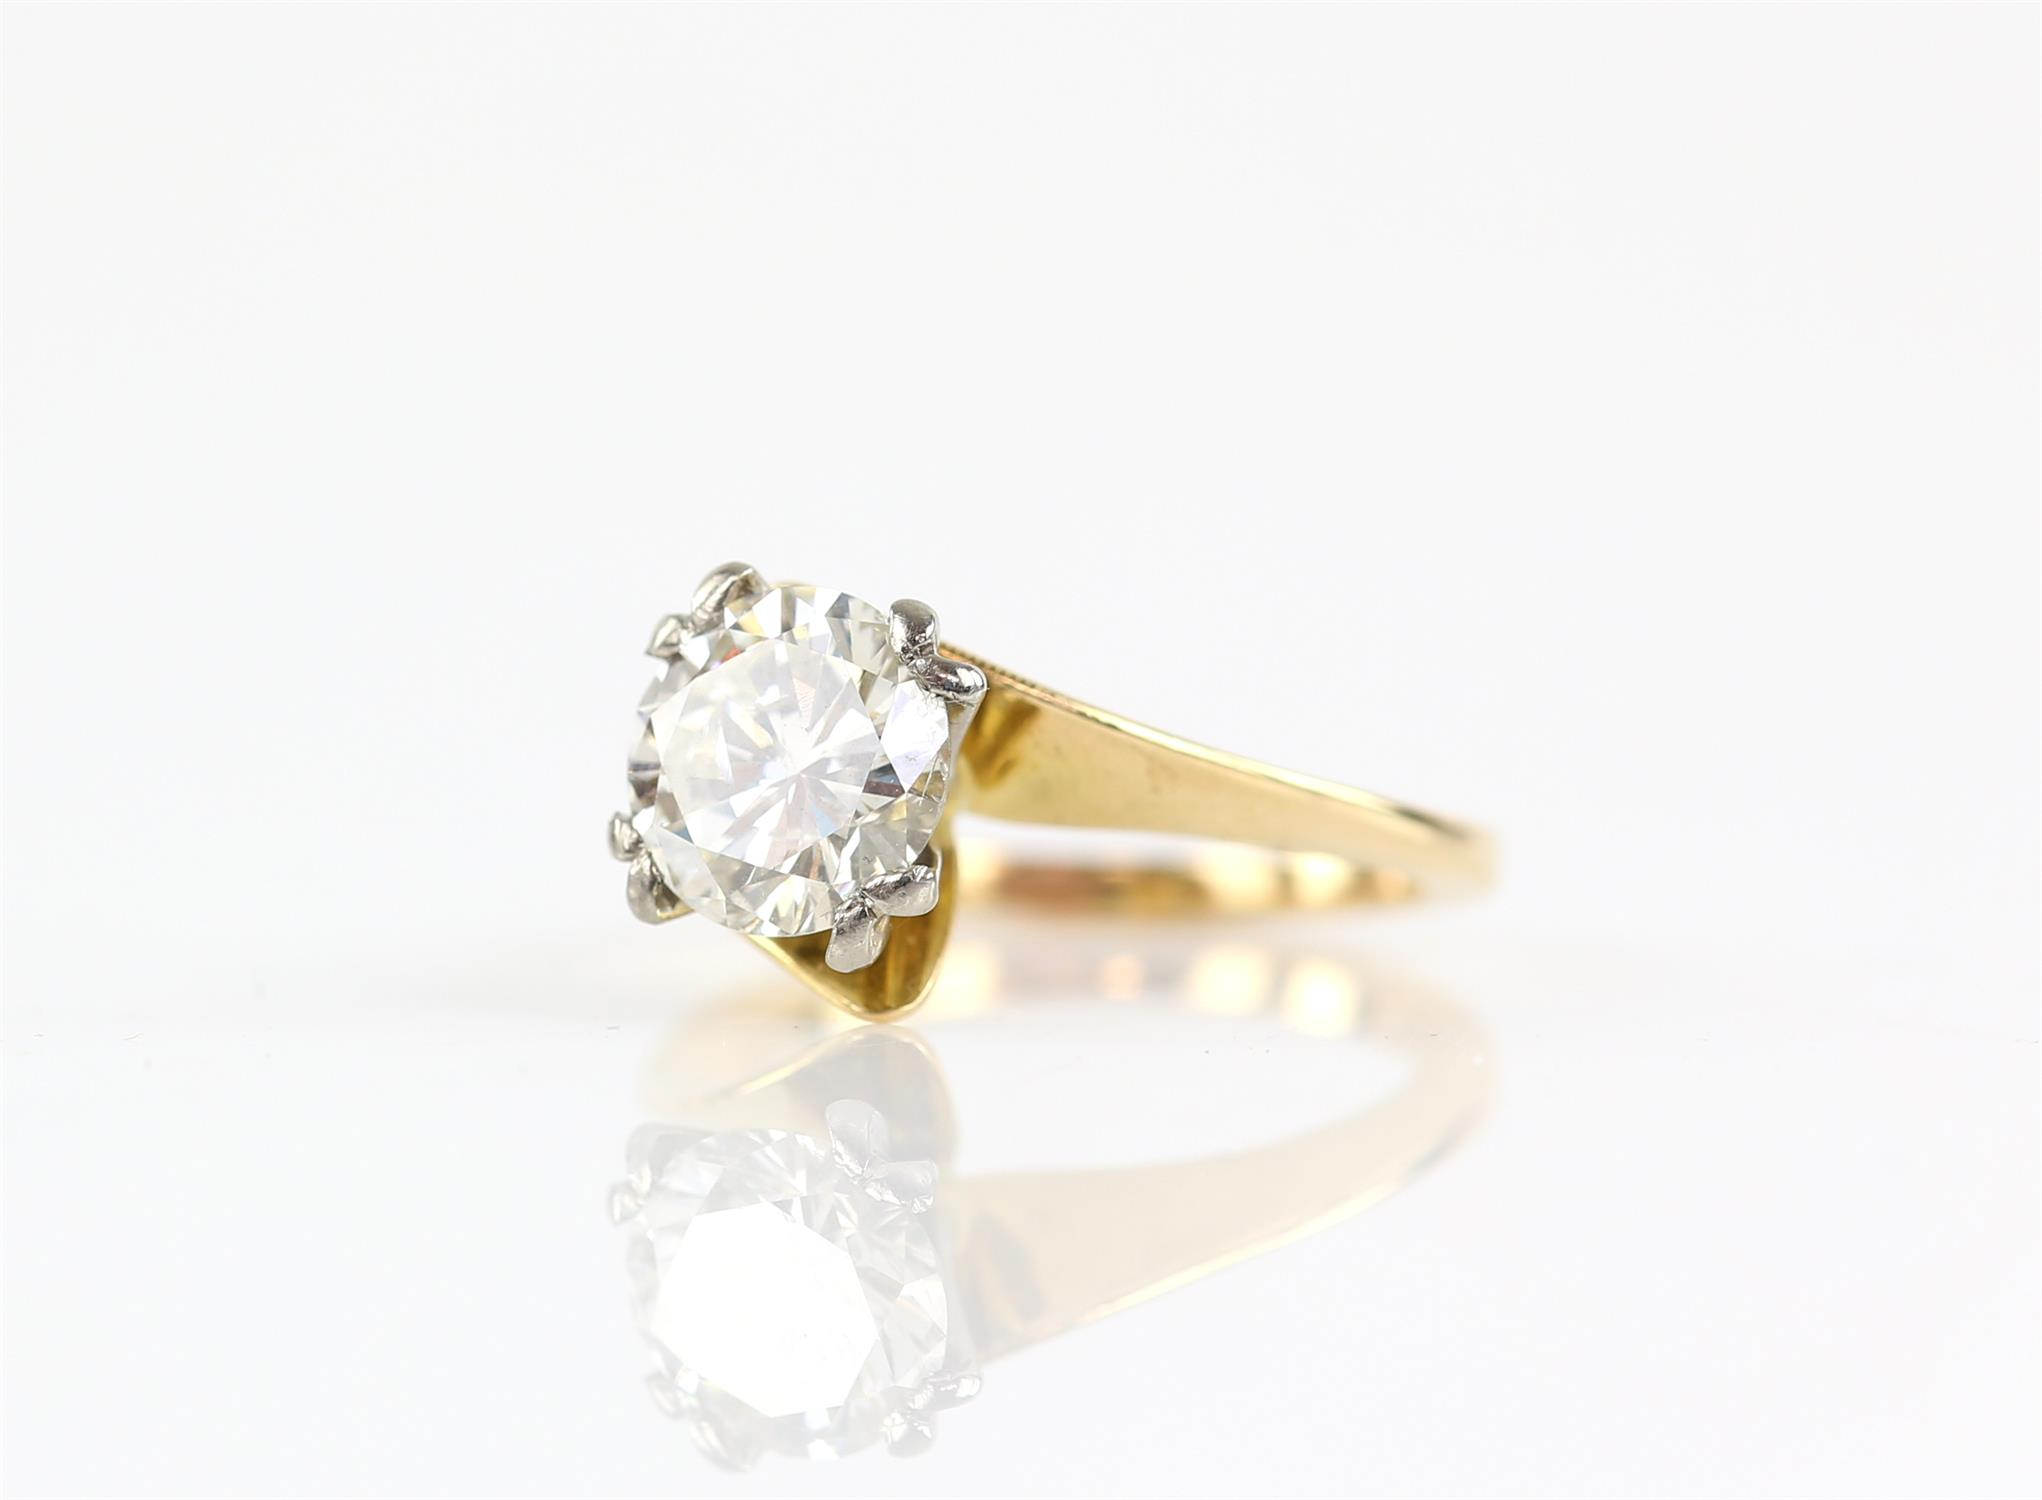 Single stone diamond ring, round brilliant cut diamond weighing an estimated 2.02 carats, - Image 2 of 6